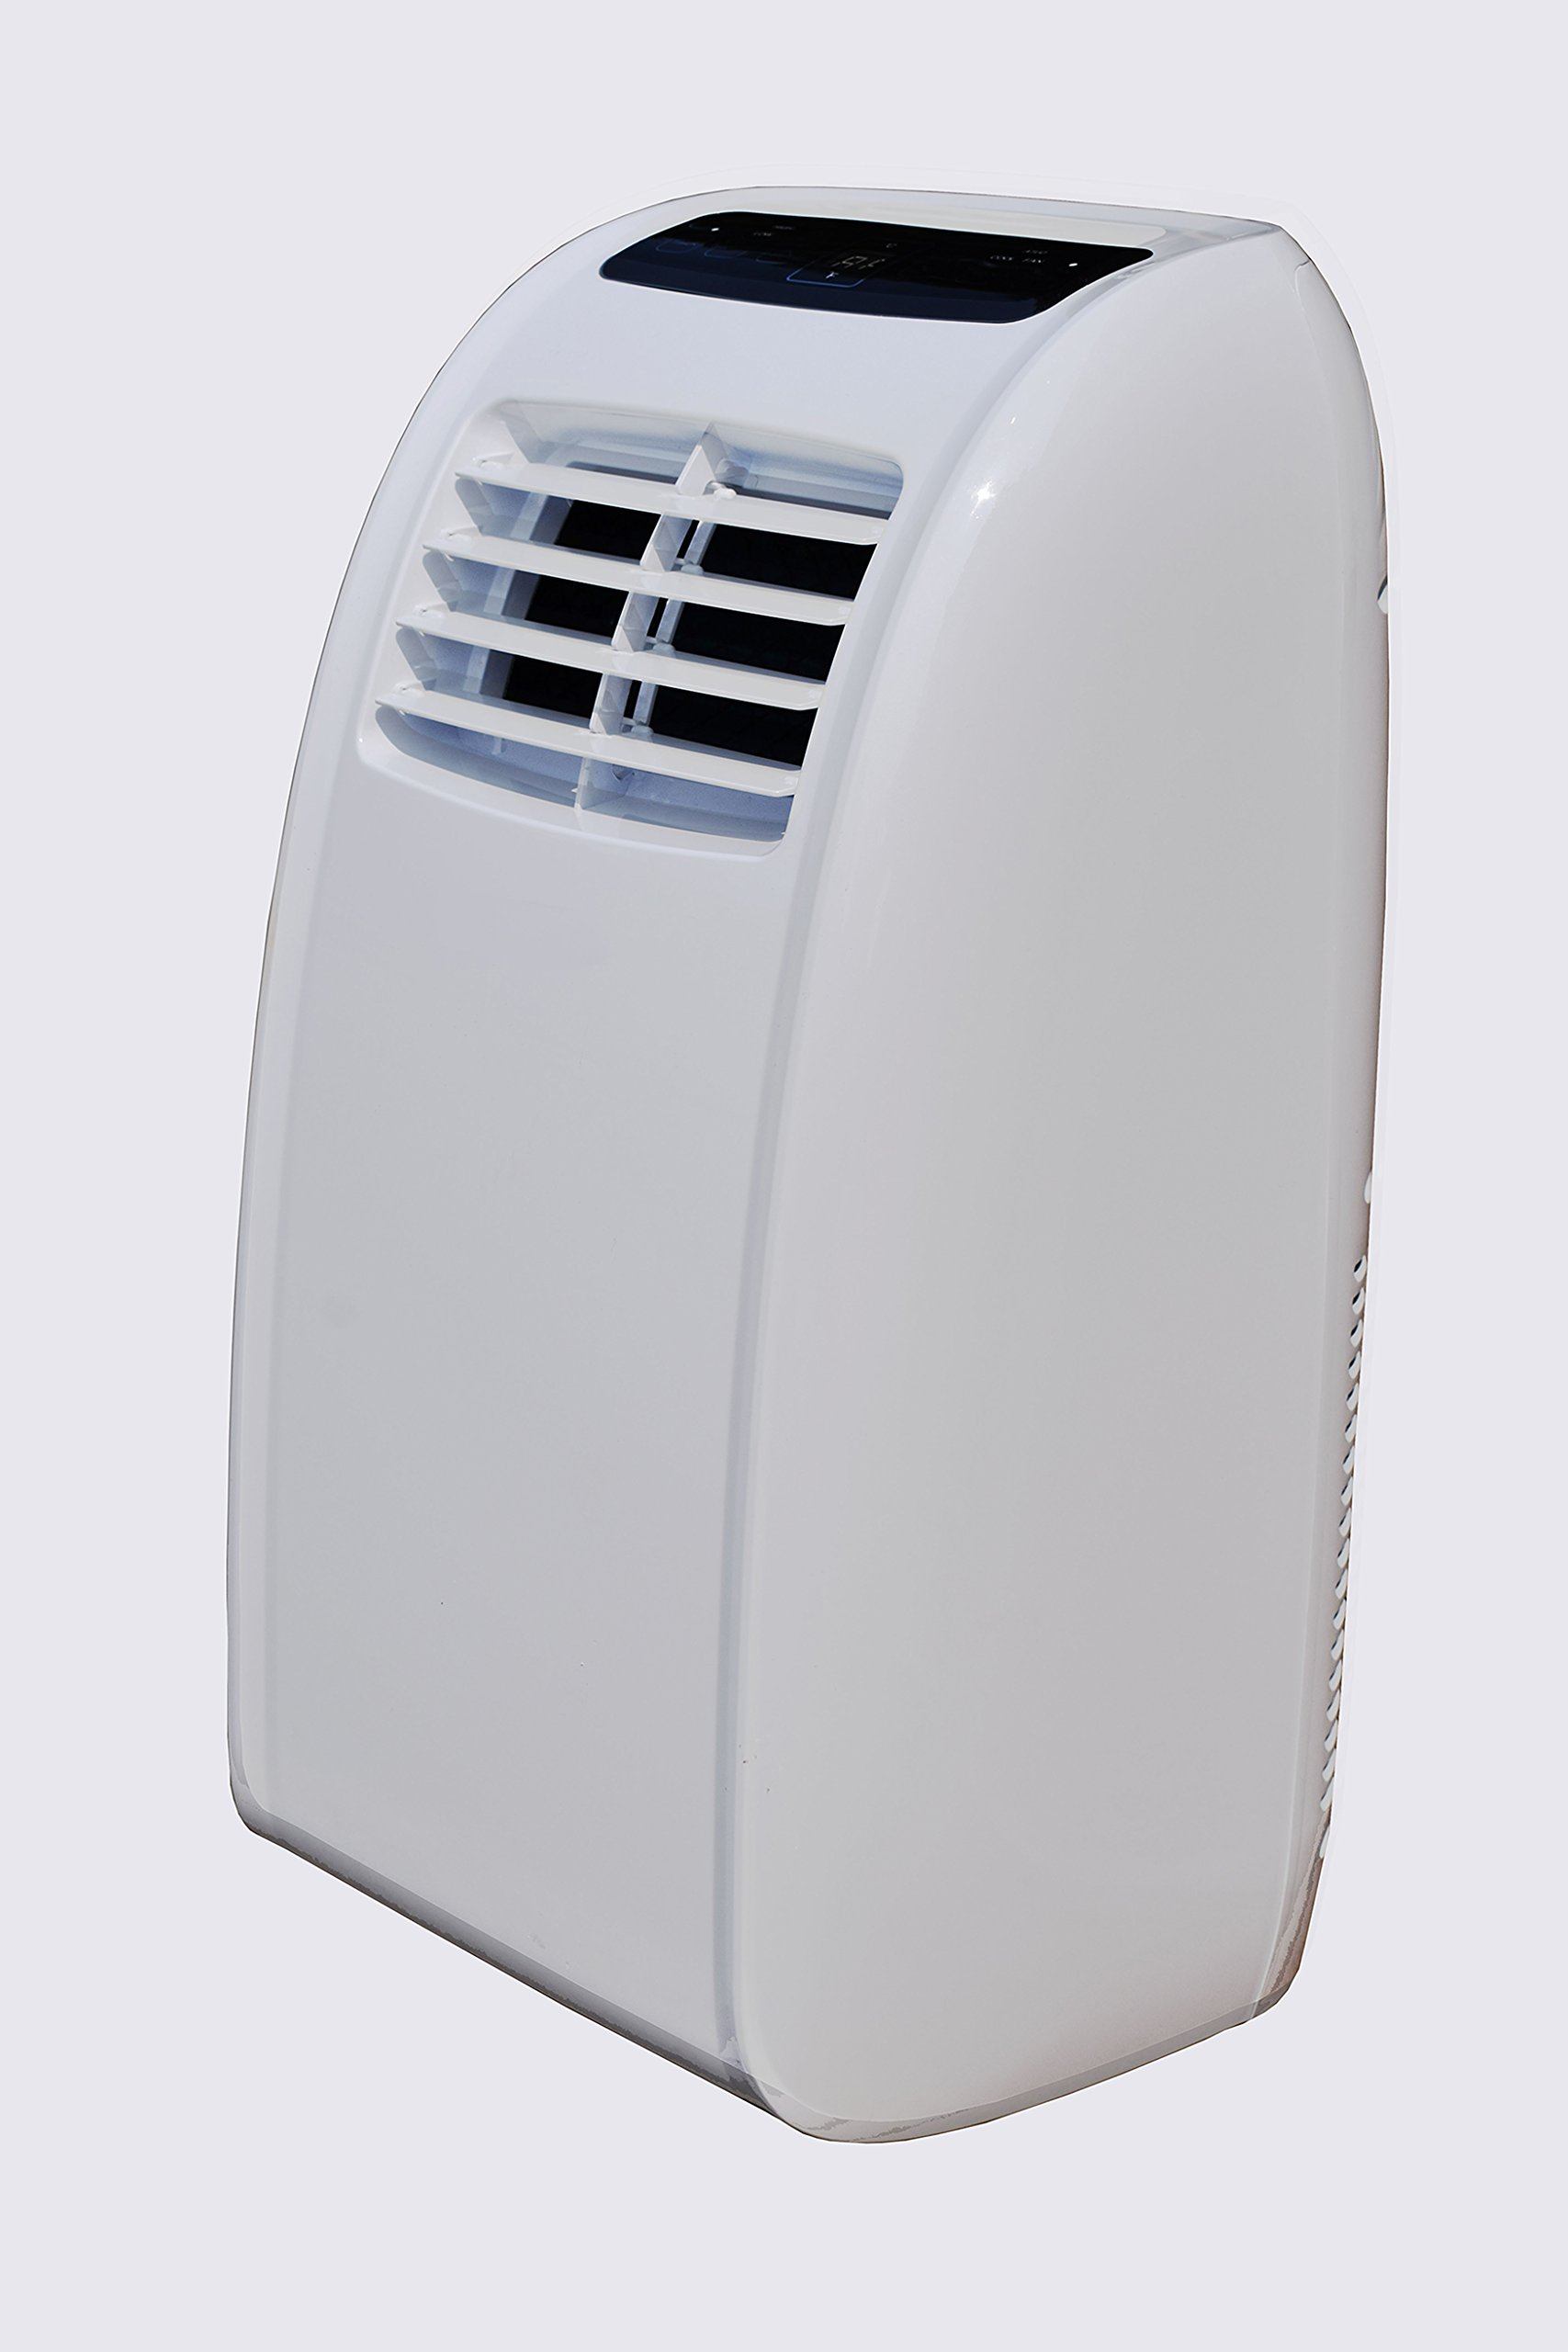 CCH YPLA-08C Portable Air Conditioner 4 Ultra compact for easy handling and positioning. Weighs only 47 lbs 8,000 BTU's of cooling power keeps a room up to250 sq. Ft. Cool and comfortable and partially Cools an Area up to 350 sq.Ft Washable and reusable air filter saves money on Replacements